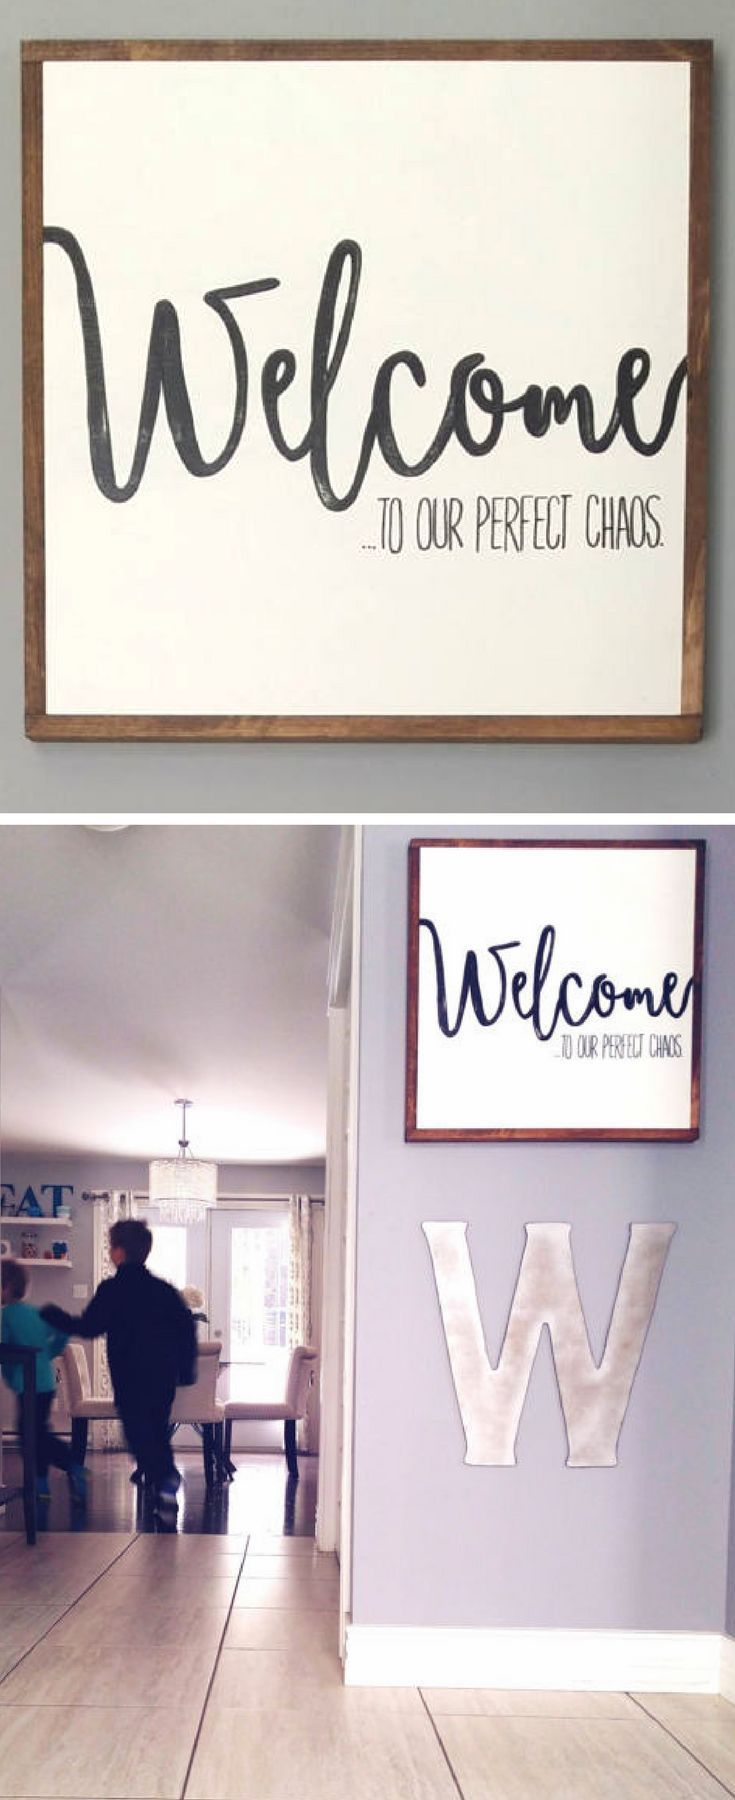 Such a perfect sign for any home that has small children – it's always messy, but … #chaotic # always # all #children #small